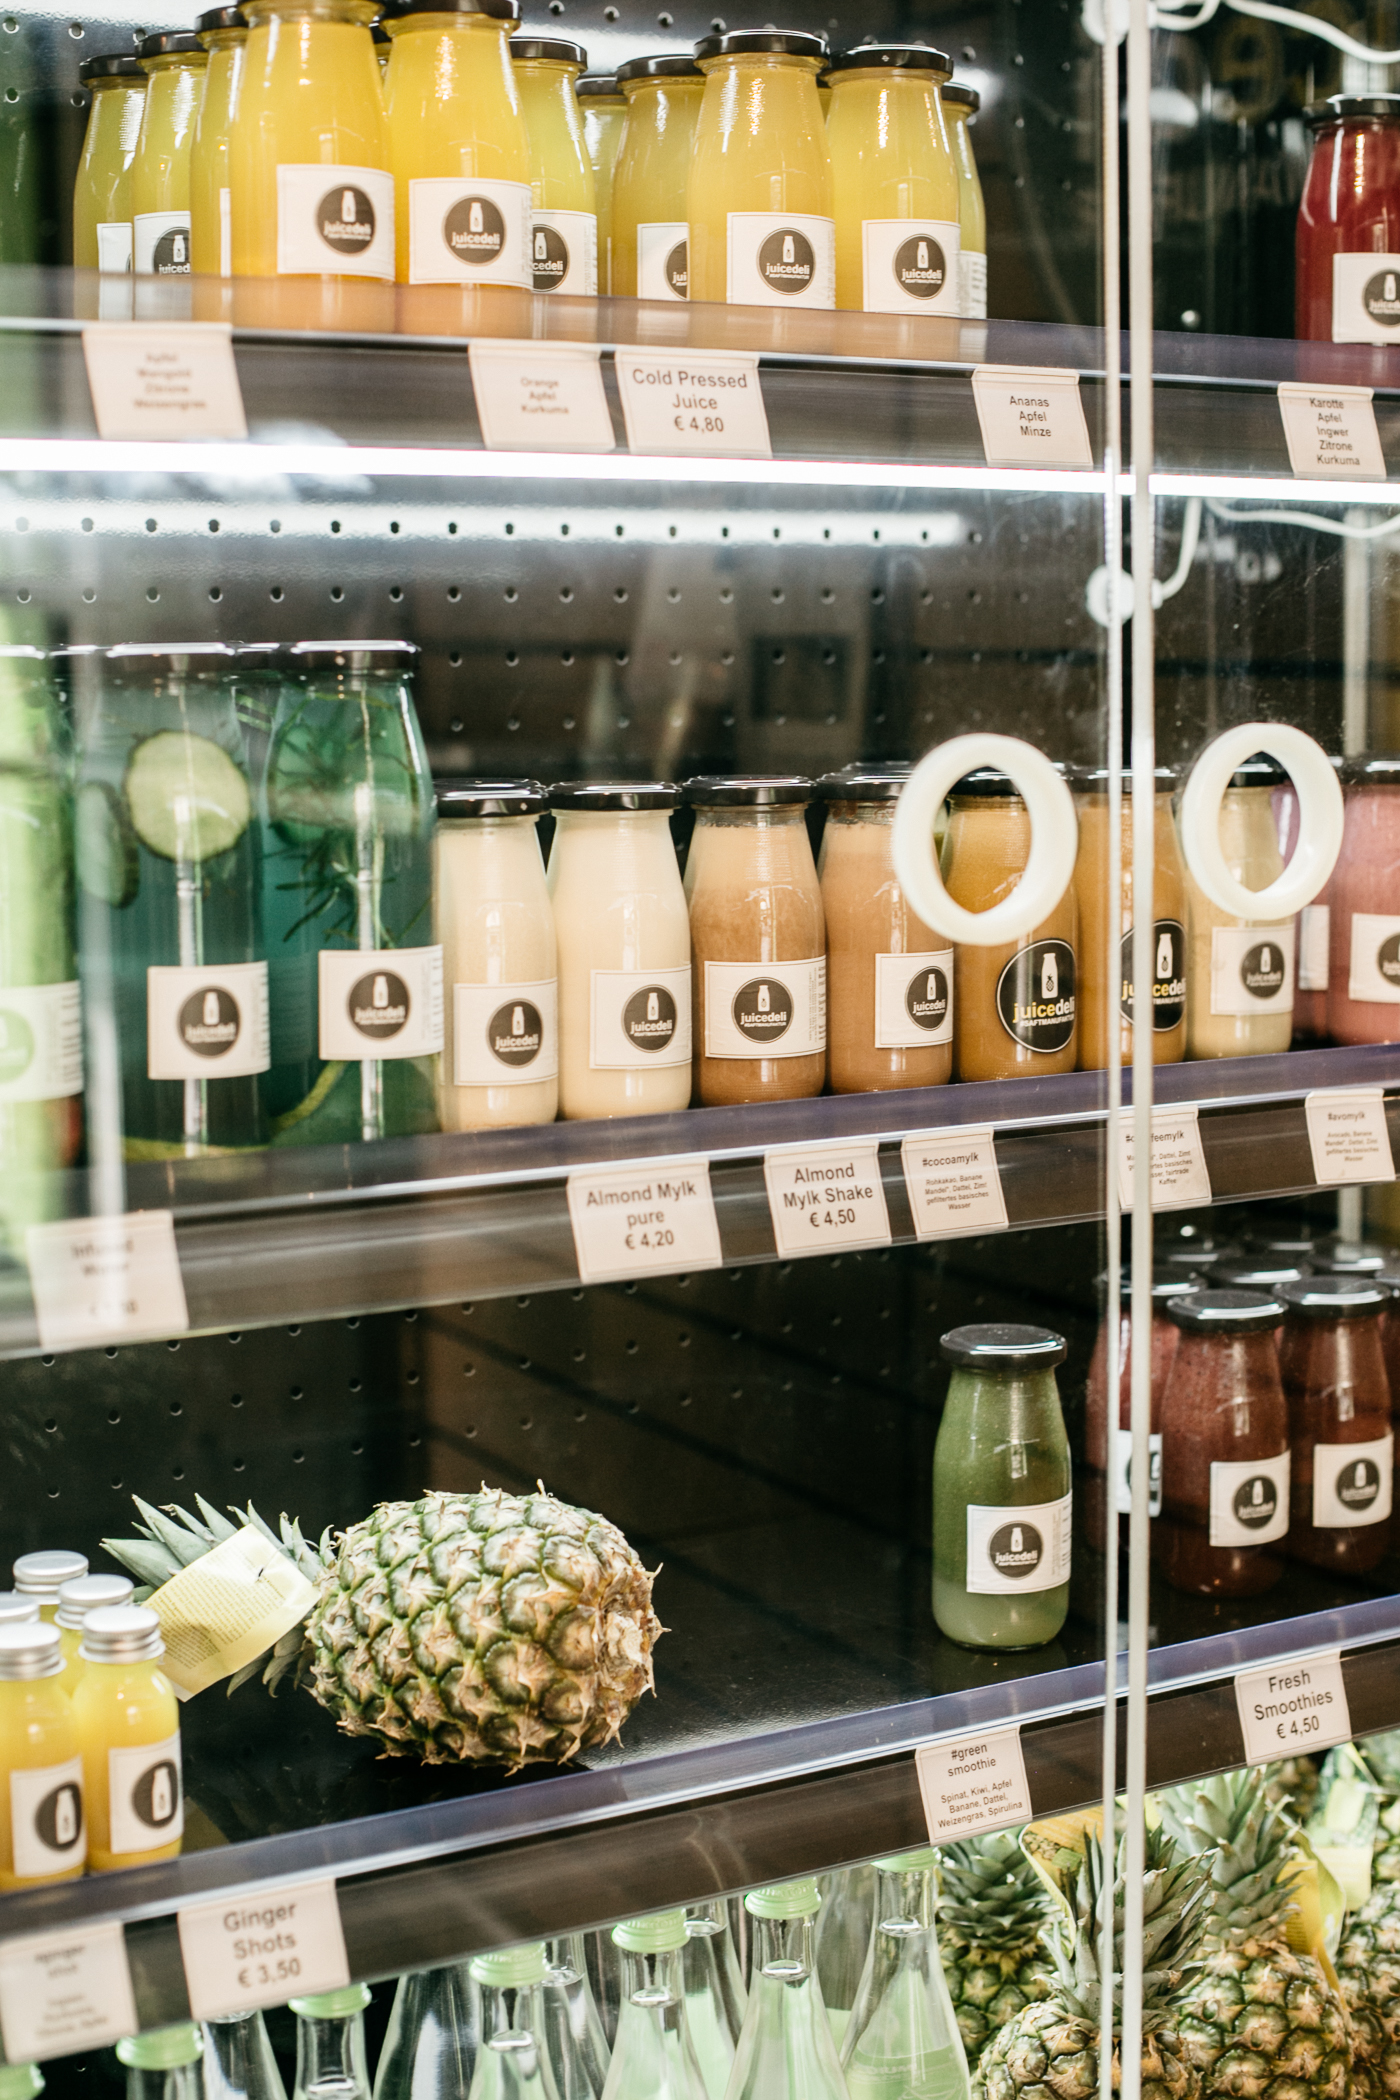 Juice Deli Wien: Cold Pressed Organic Juices | Love Daily Dose